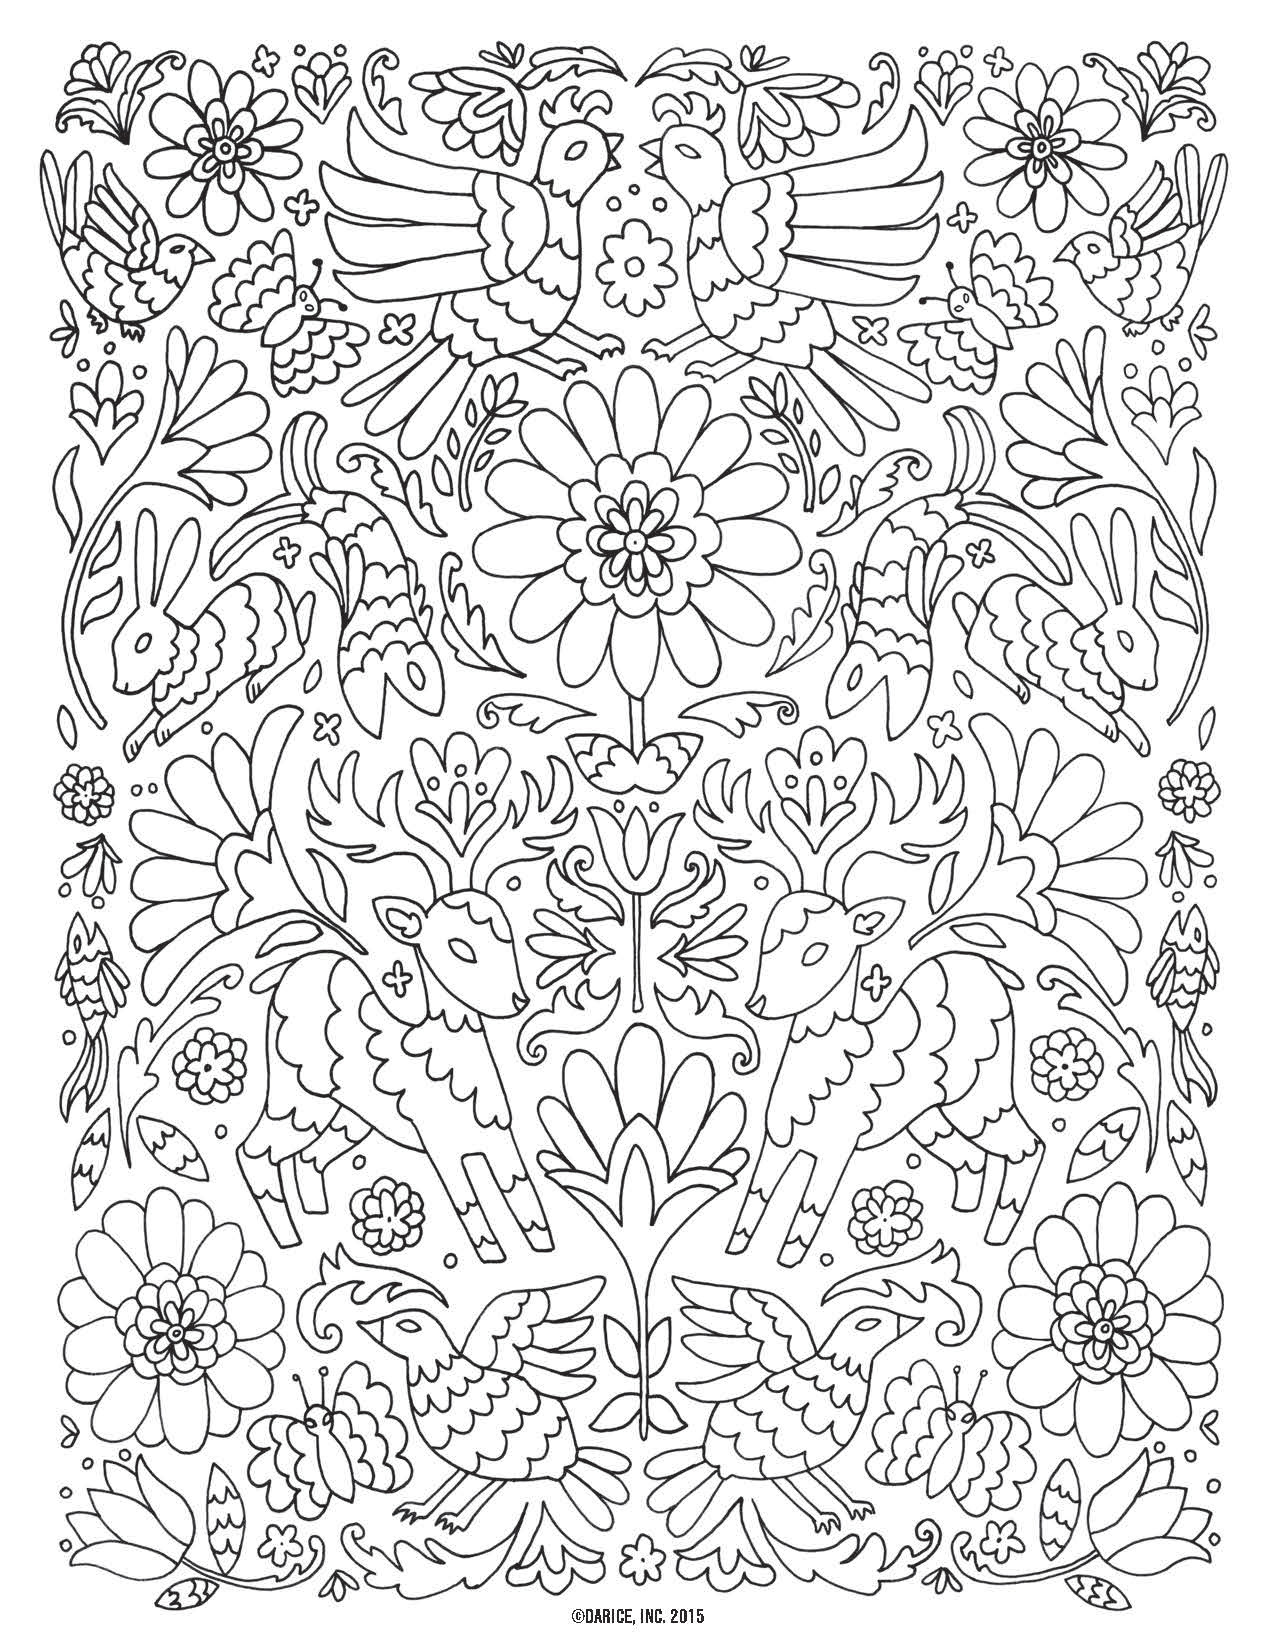 Adult Colouring Bird Stock Illustrations – 610 Adult Colouring ... | 1650x1275